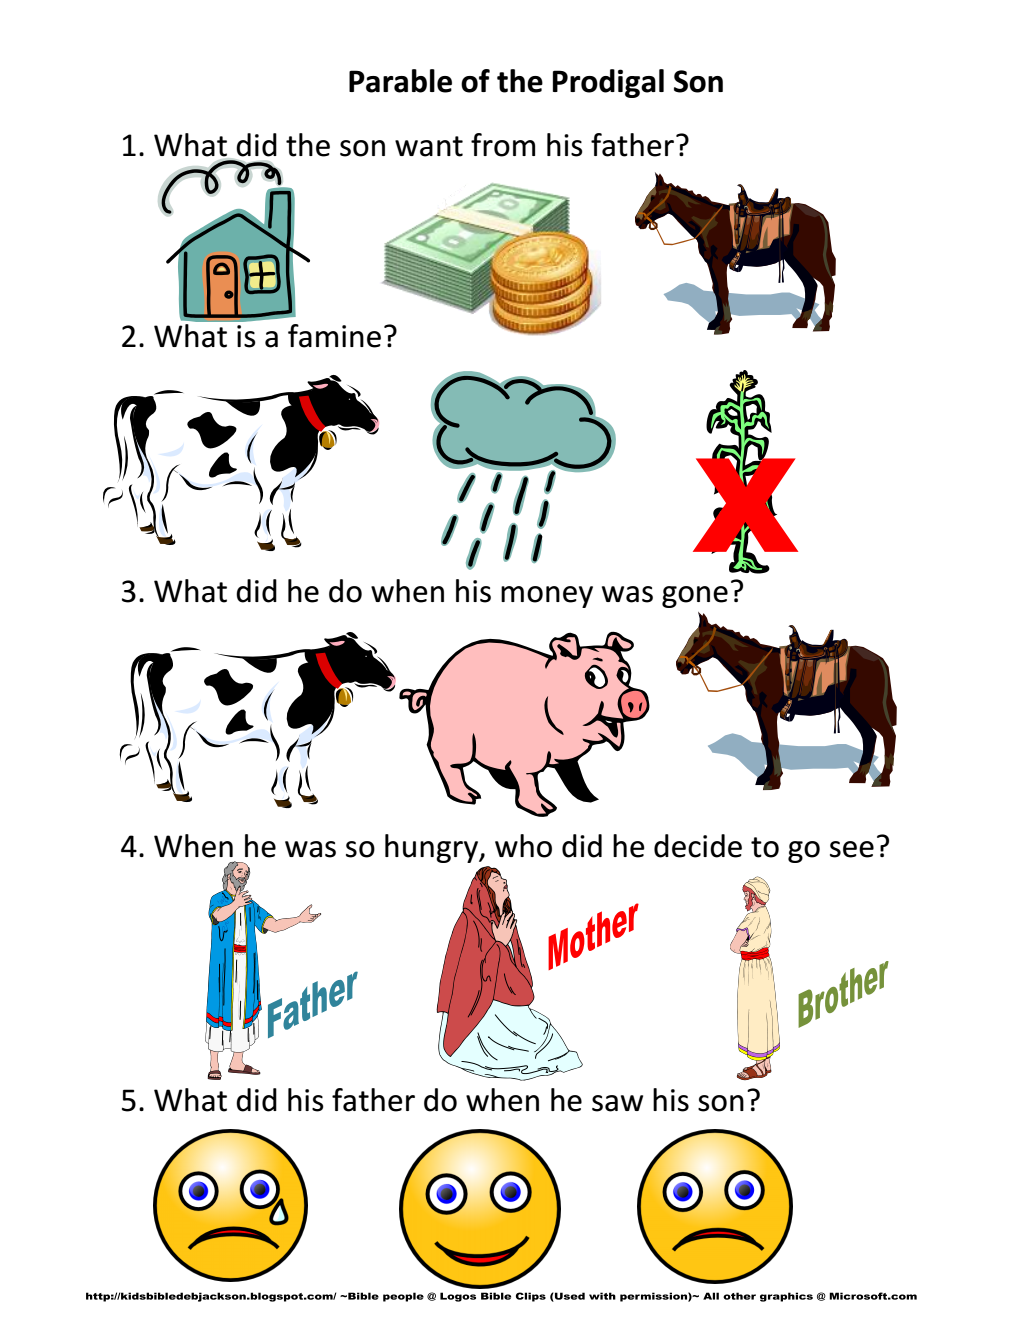 12 Parable Of The Prodigal Son Worksheet